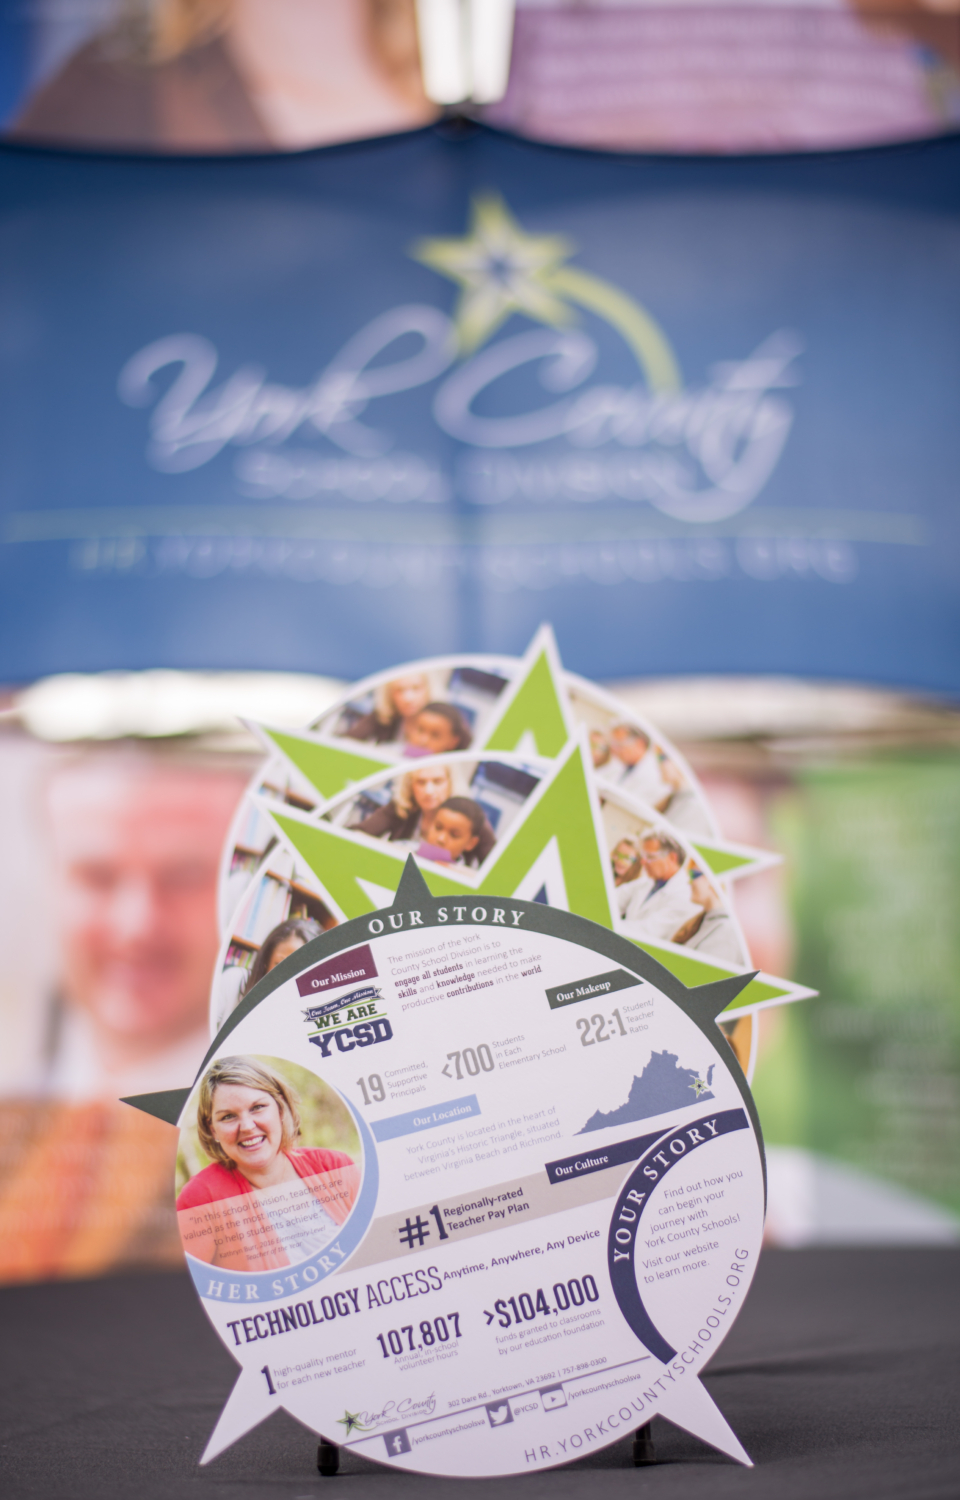 This award-winning campaign utilizes a job fair display, die cut handout, and website togarner more, quality applications for available teaching positions within YCSD. The strategic headers, quotes, and imagery consistently and cohesivelytouch the four main topics teachers are looking for in a school division: good compensation, helpful and caring administrators, professionaldevelopment opportunities, and an engaged community.